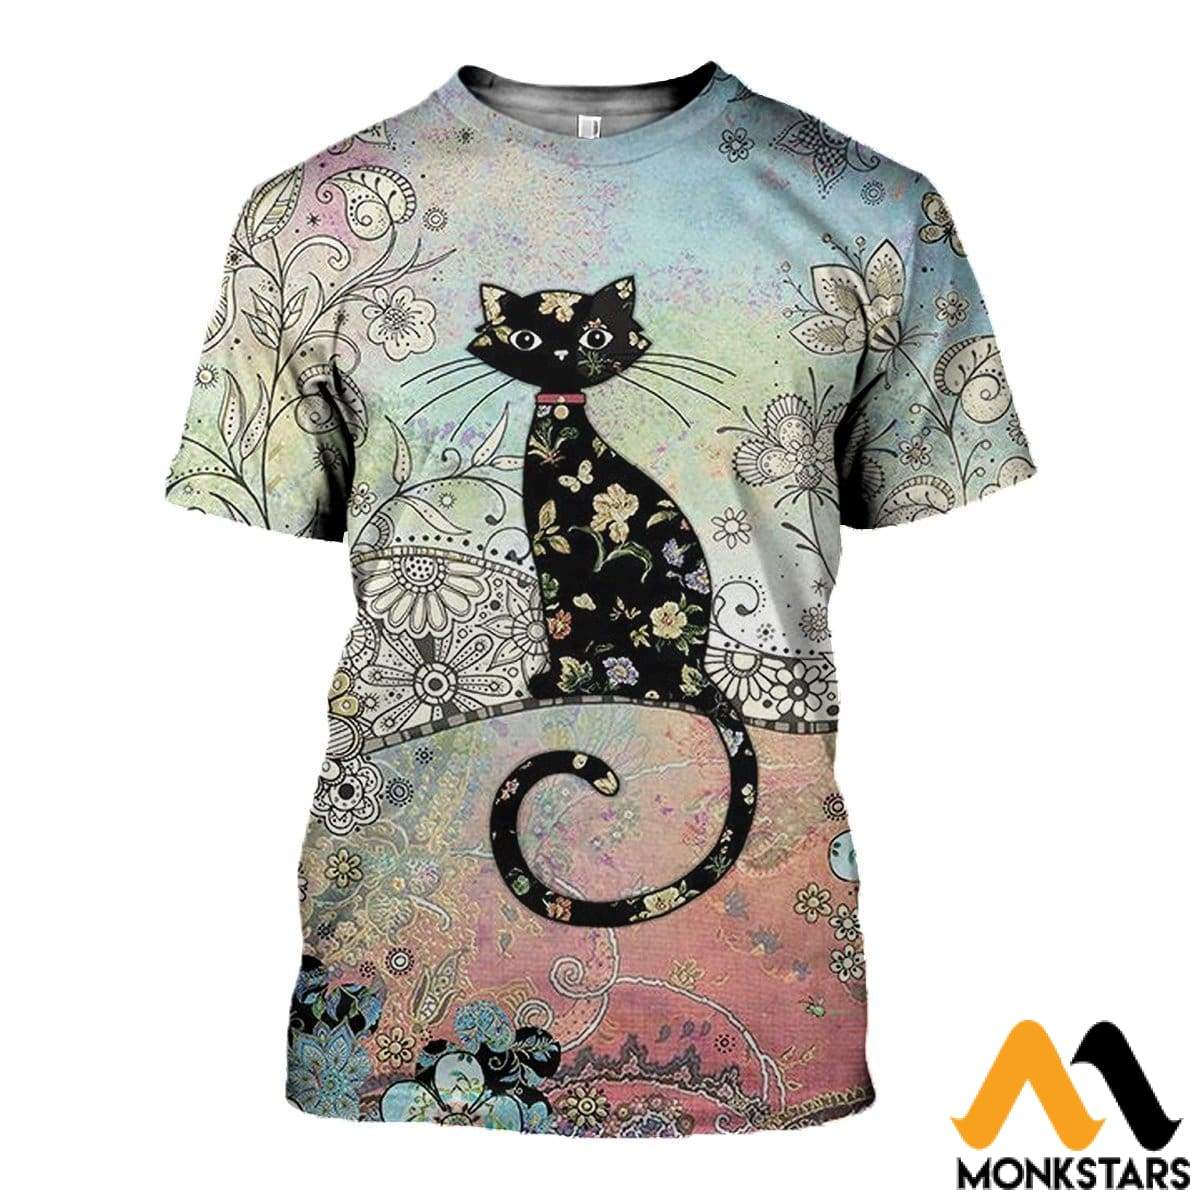 3D All Over Printed Cat T-Shirt Hoodie Adul100401 / Xs Clothes